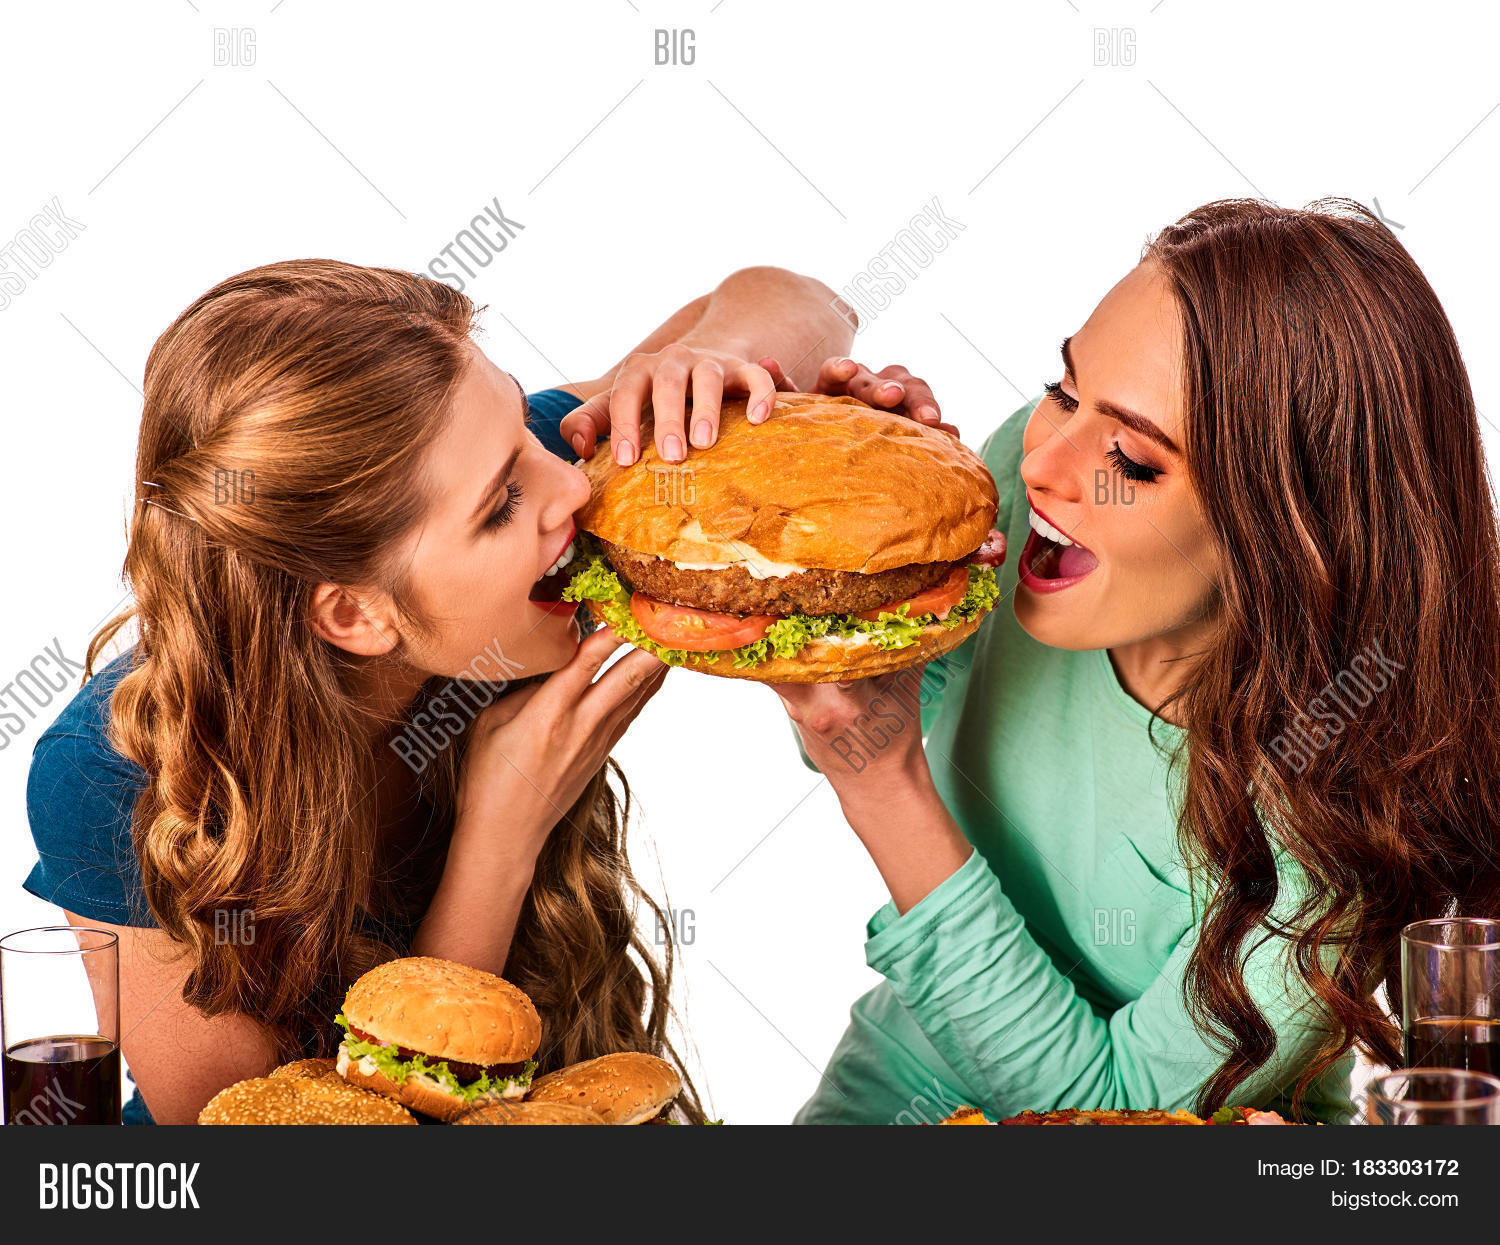 Two girls eating eachother